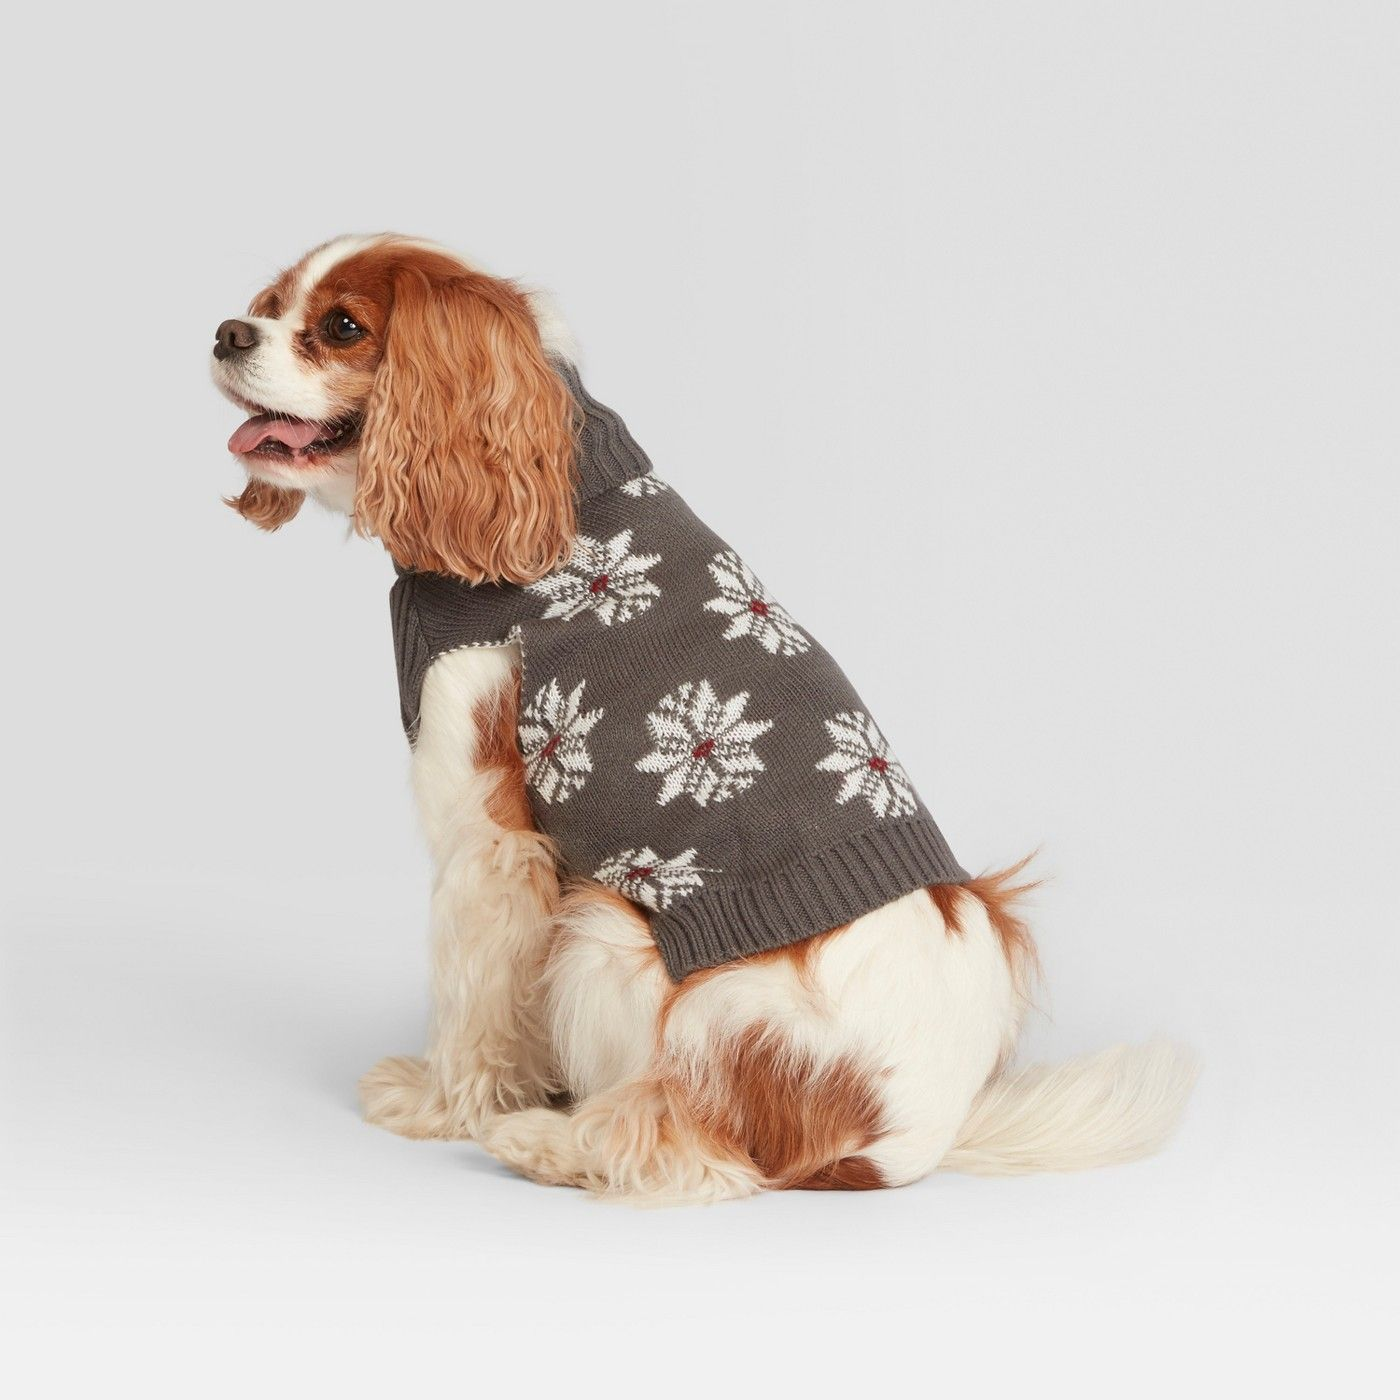 Hearth & Hand Collection dog sweater